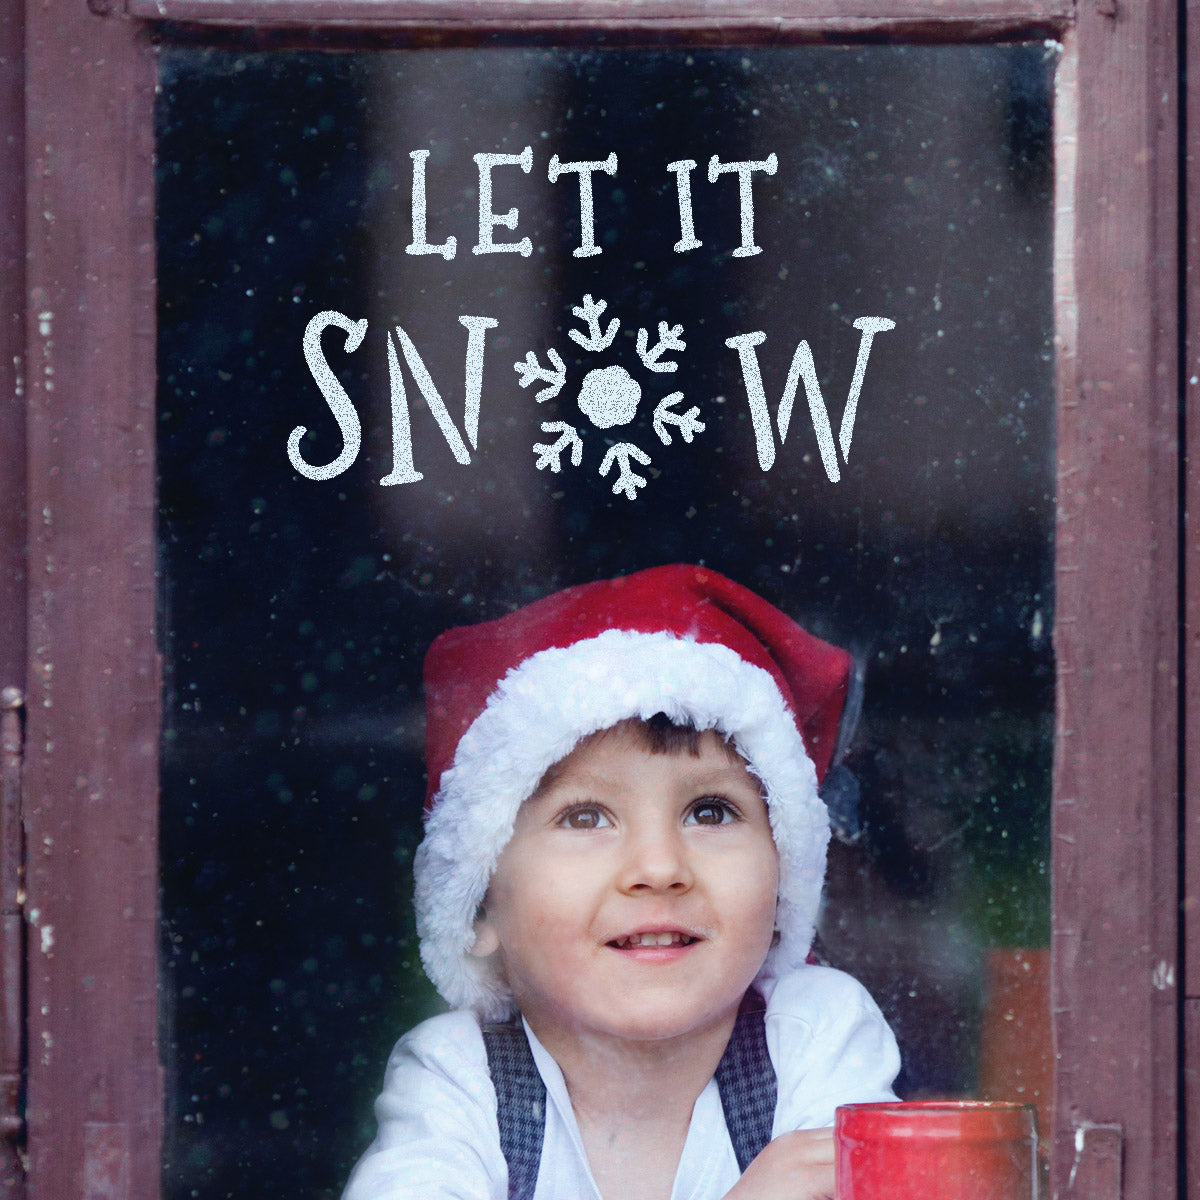 CraftStar Let It Snow Christmas Text Stencil on a Window